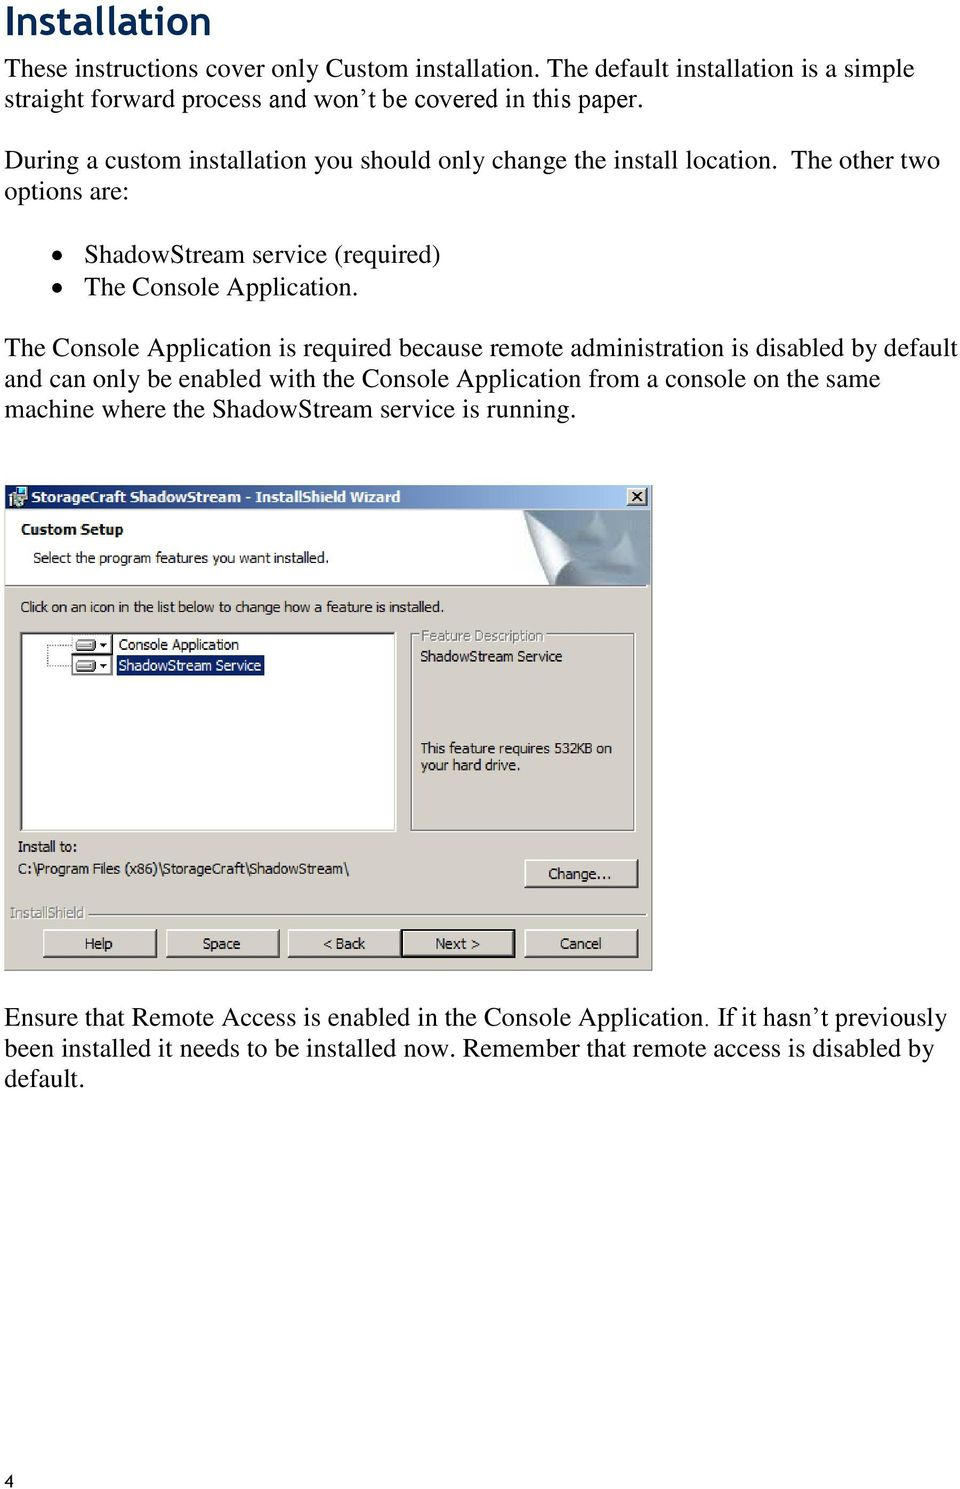 The Console Application is required because remote administration is disabled by default and can only be enabled with the Console Application from a console on the same machine